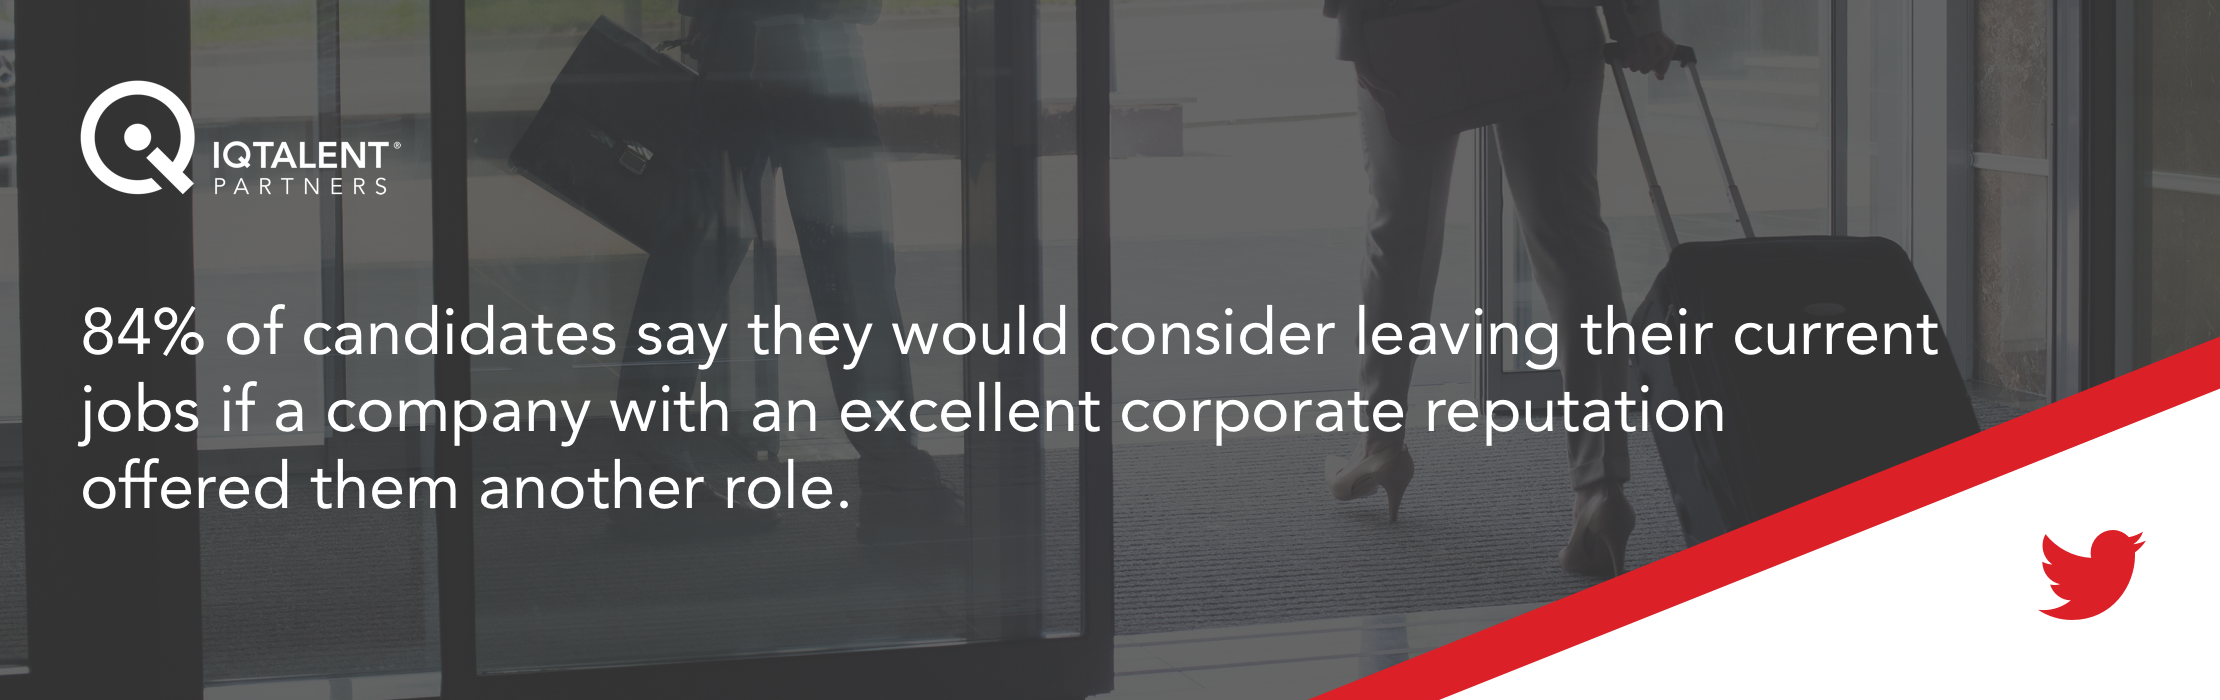 84% of candidates say they would consider leaving their current jobs if a company with an excellent corporate reputation offered them another role.